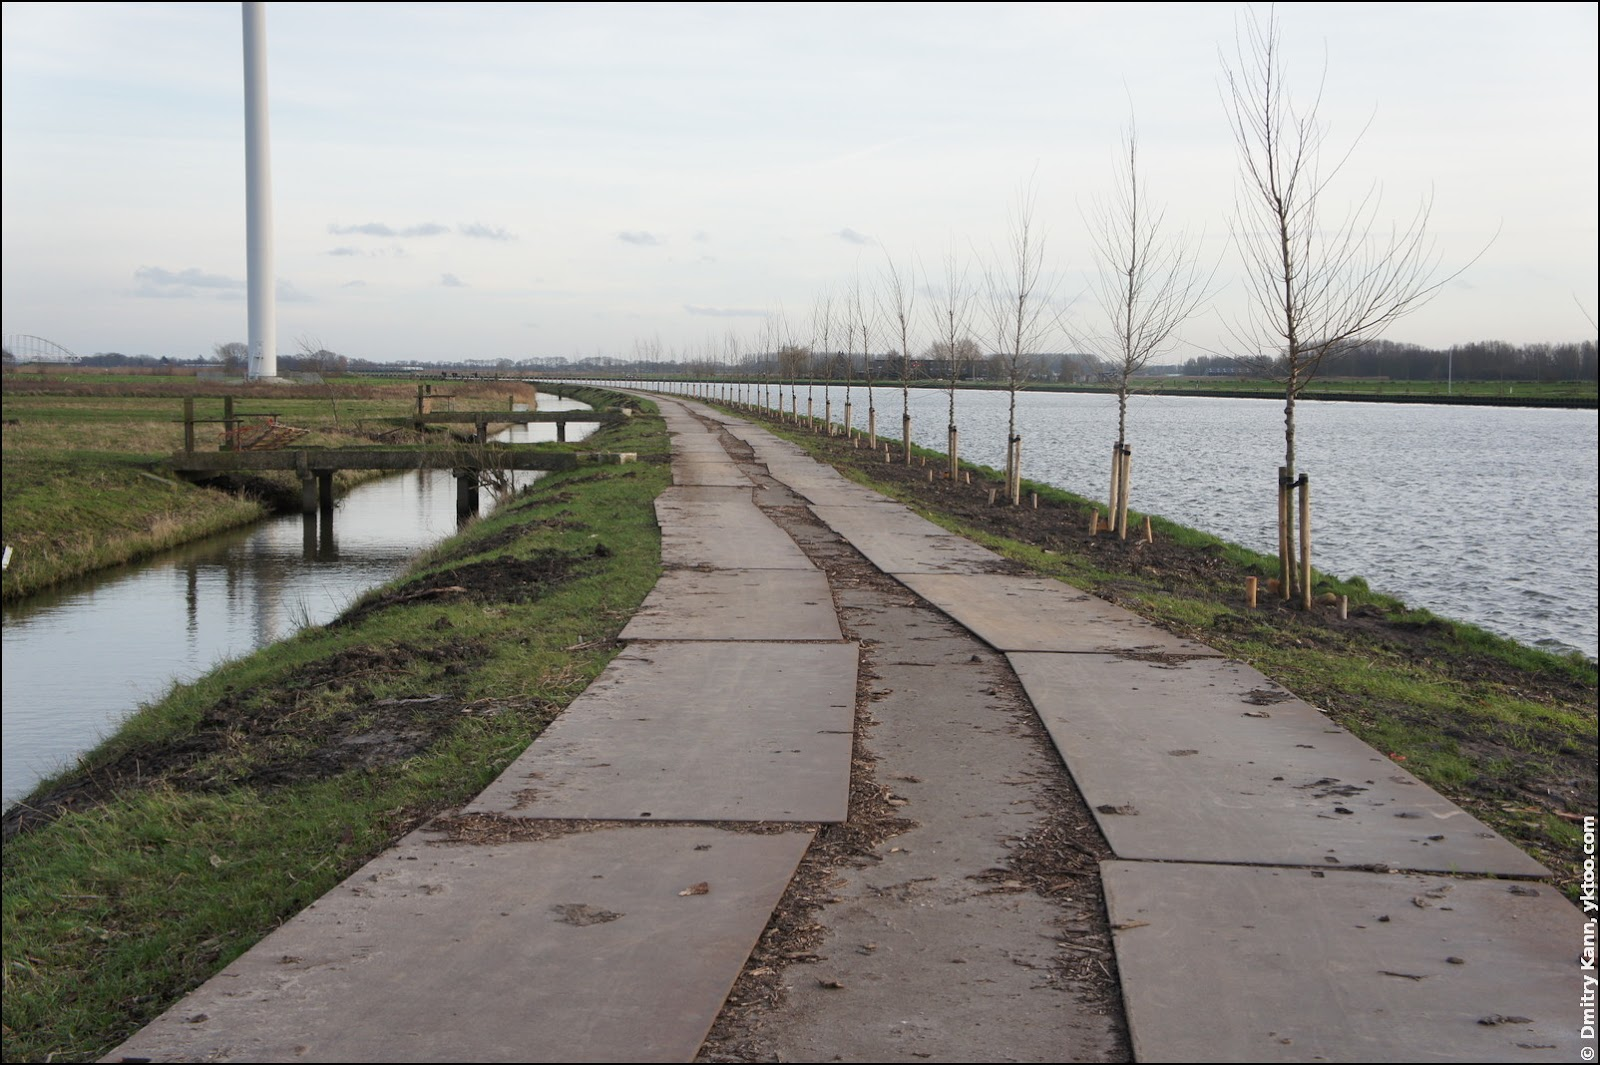 The Amsterdam-Rijnkanaal with young trees.